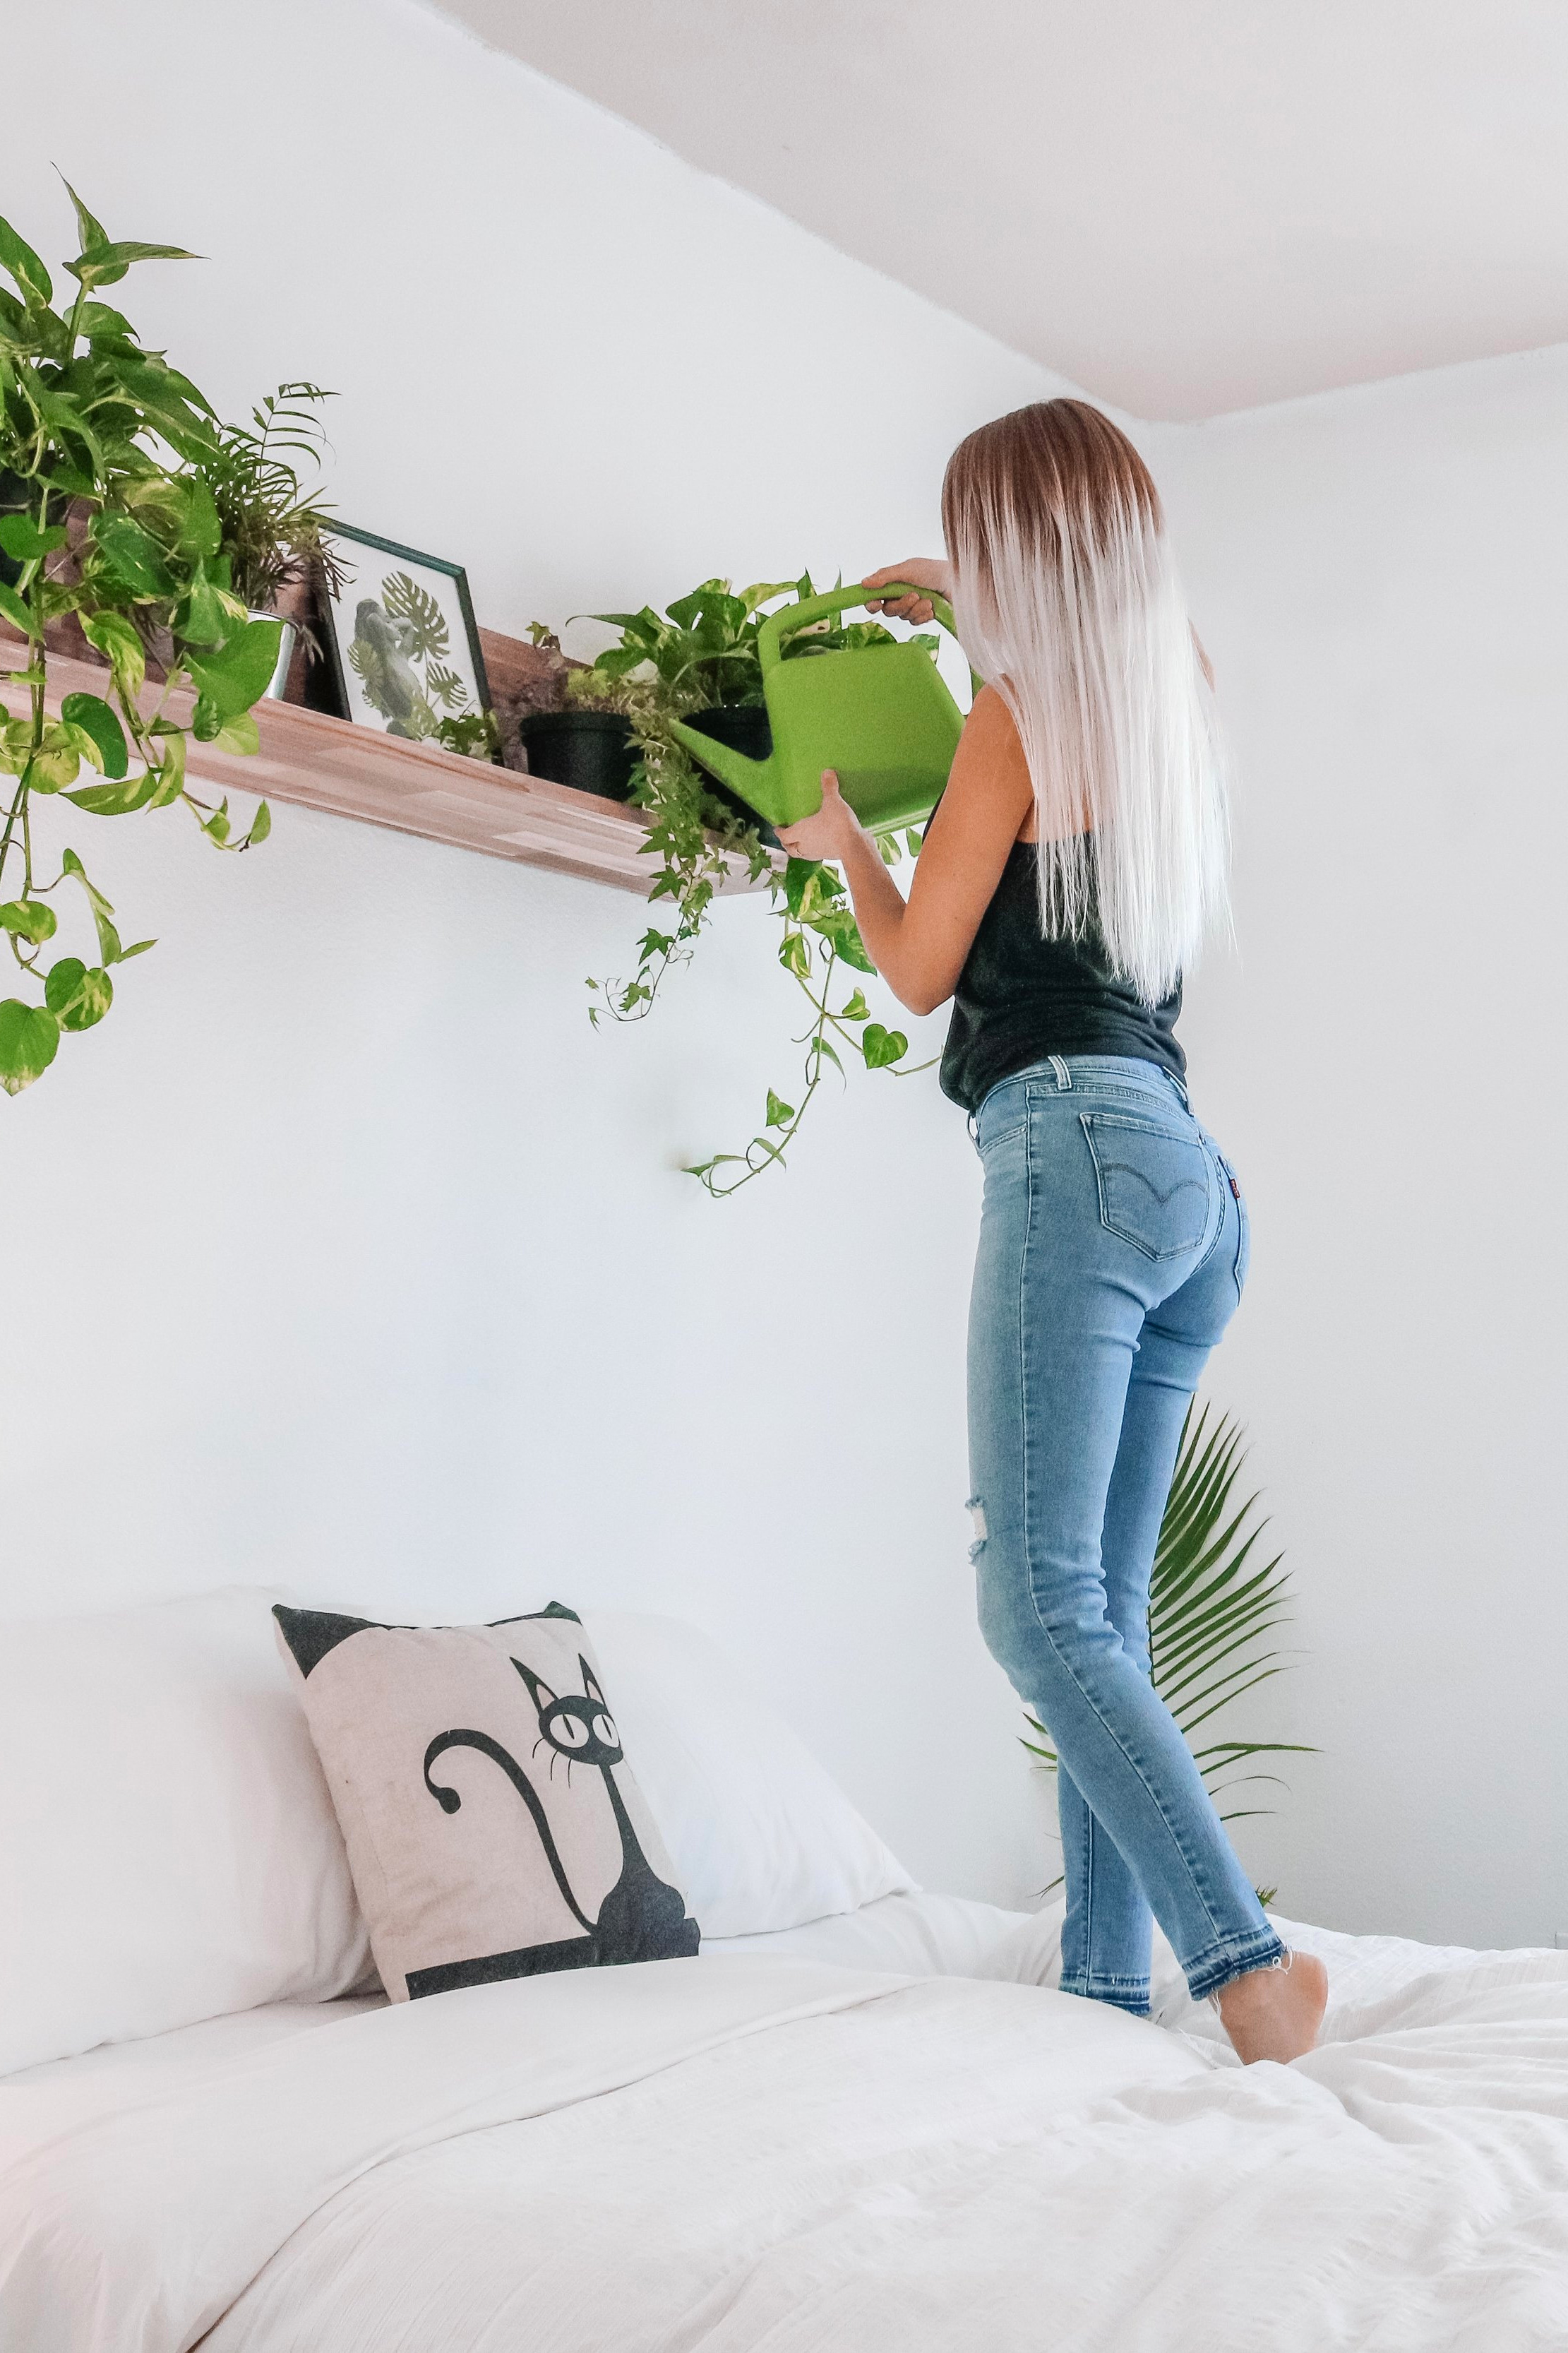 """Life as a plant lady - I have more plants than I can count and continue to propagate them – growing even more babies from the plants I already have. My room is definitely an """"urban jungle""""."""